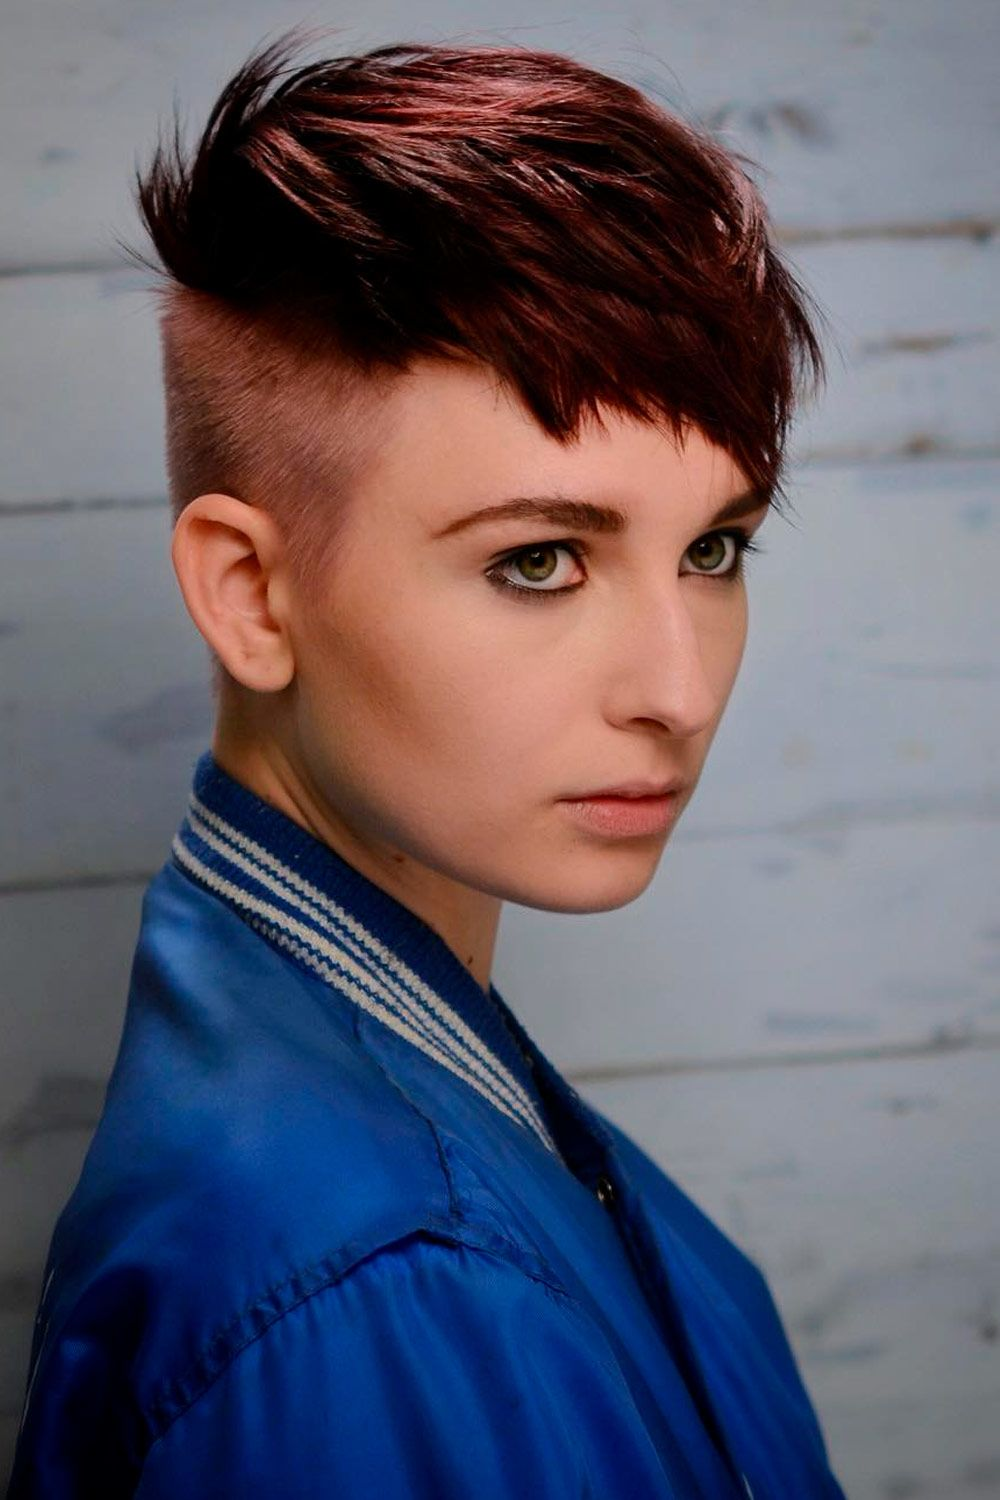 Pixie Undercut Hairstyles, short naturally curly hairstyles for round faces, short afro hairstyles for round faces